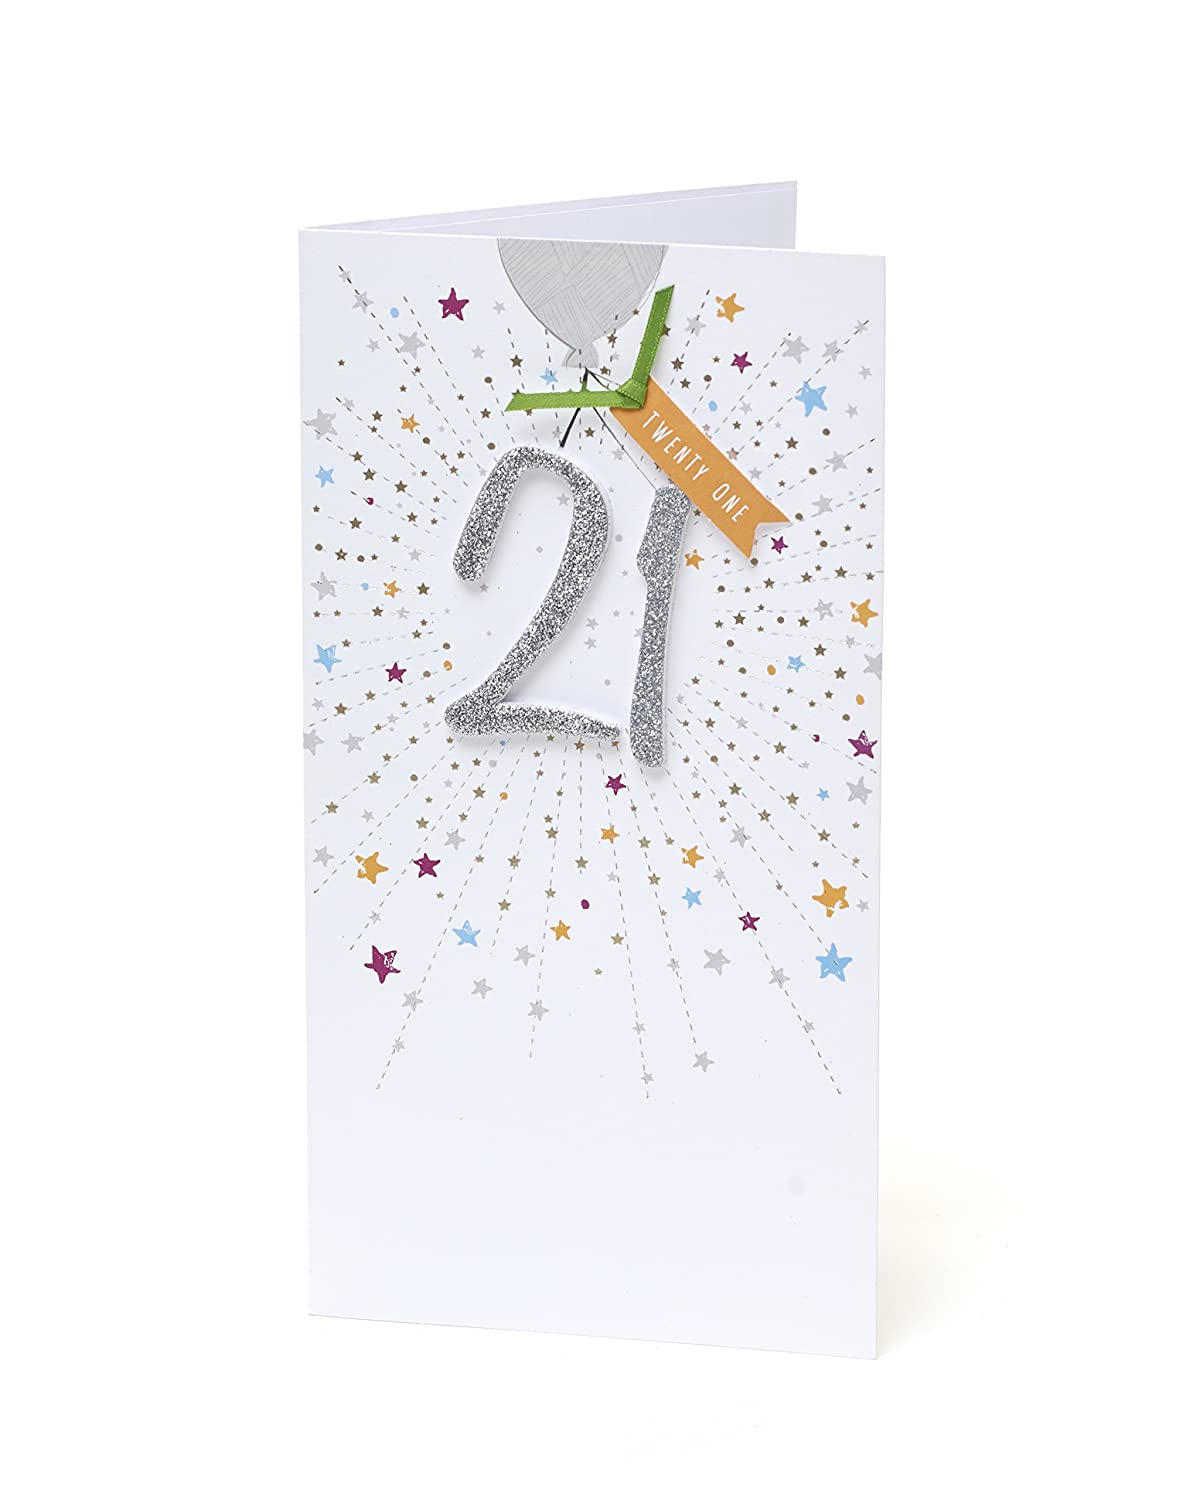 21st Birthday Gifts Birthday Gifts for Him Birthday Gifts for Her 21st Birthday Card Ideal Gift Card Age 21 Birthday Card